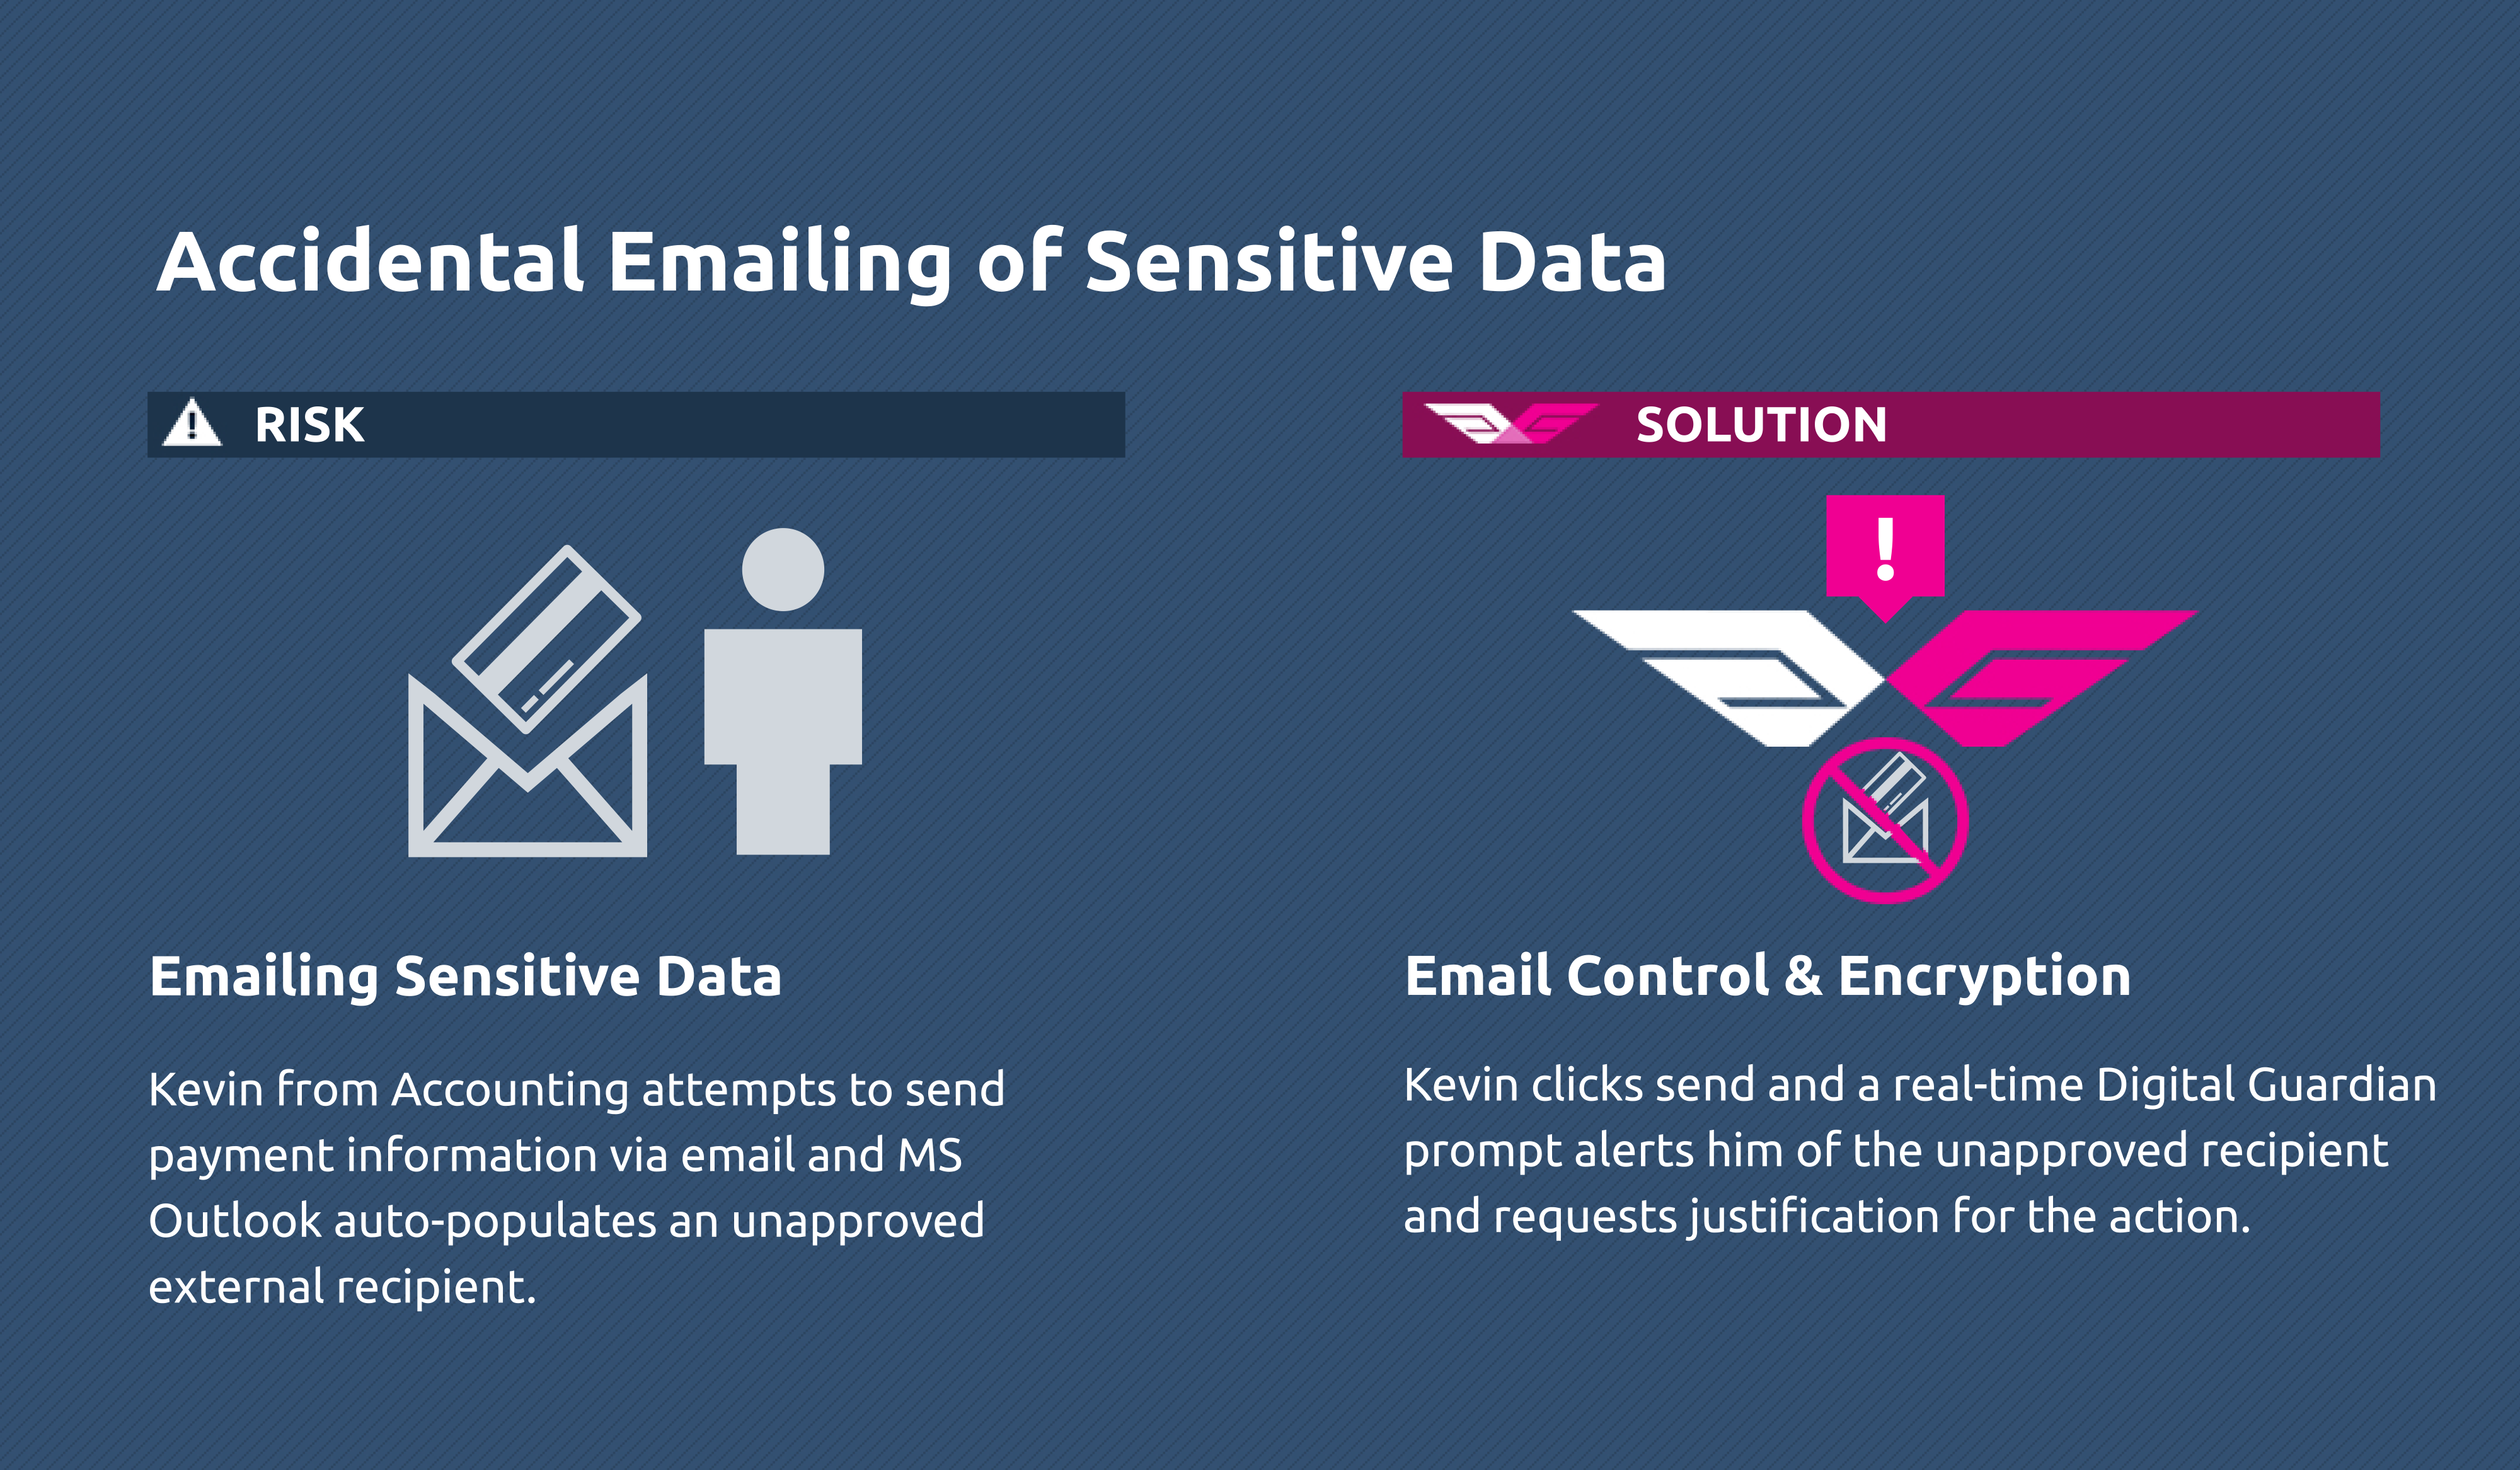 Email Control and Encryption